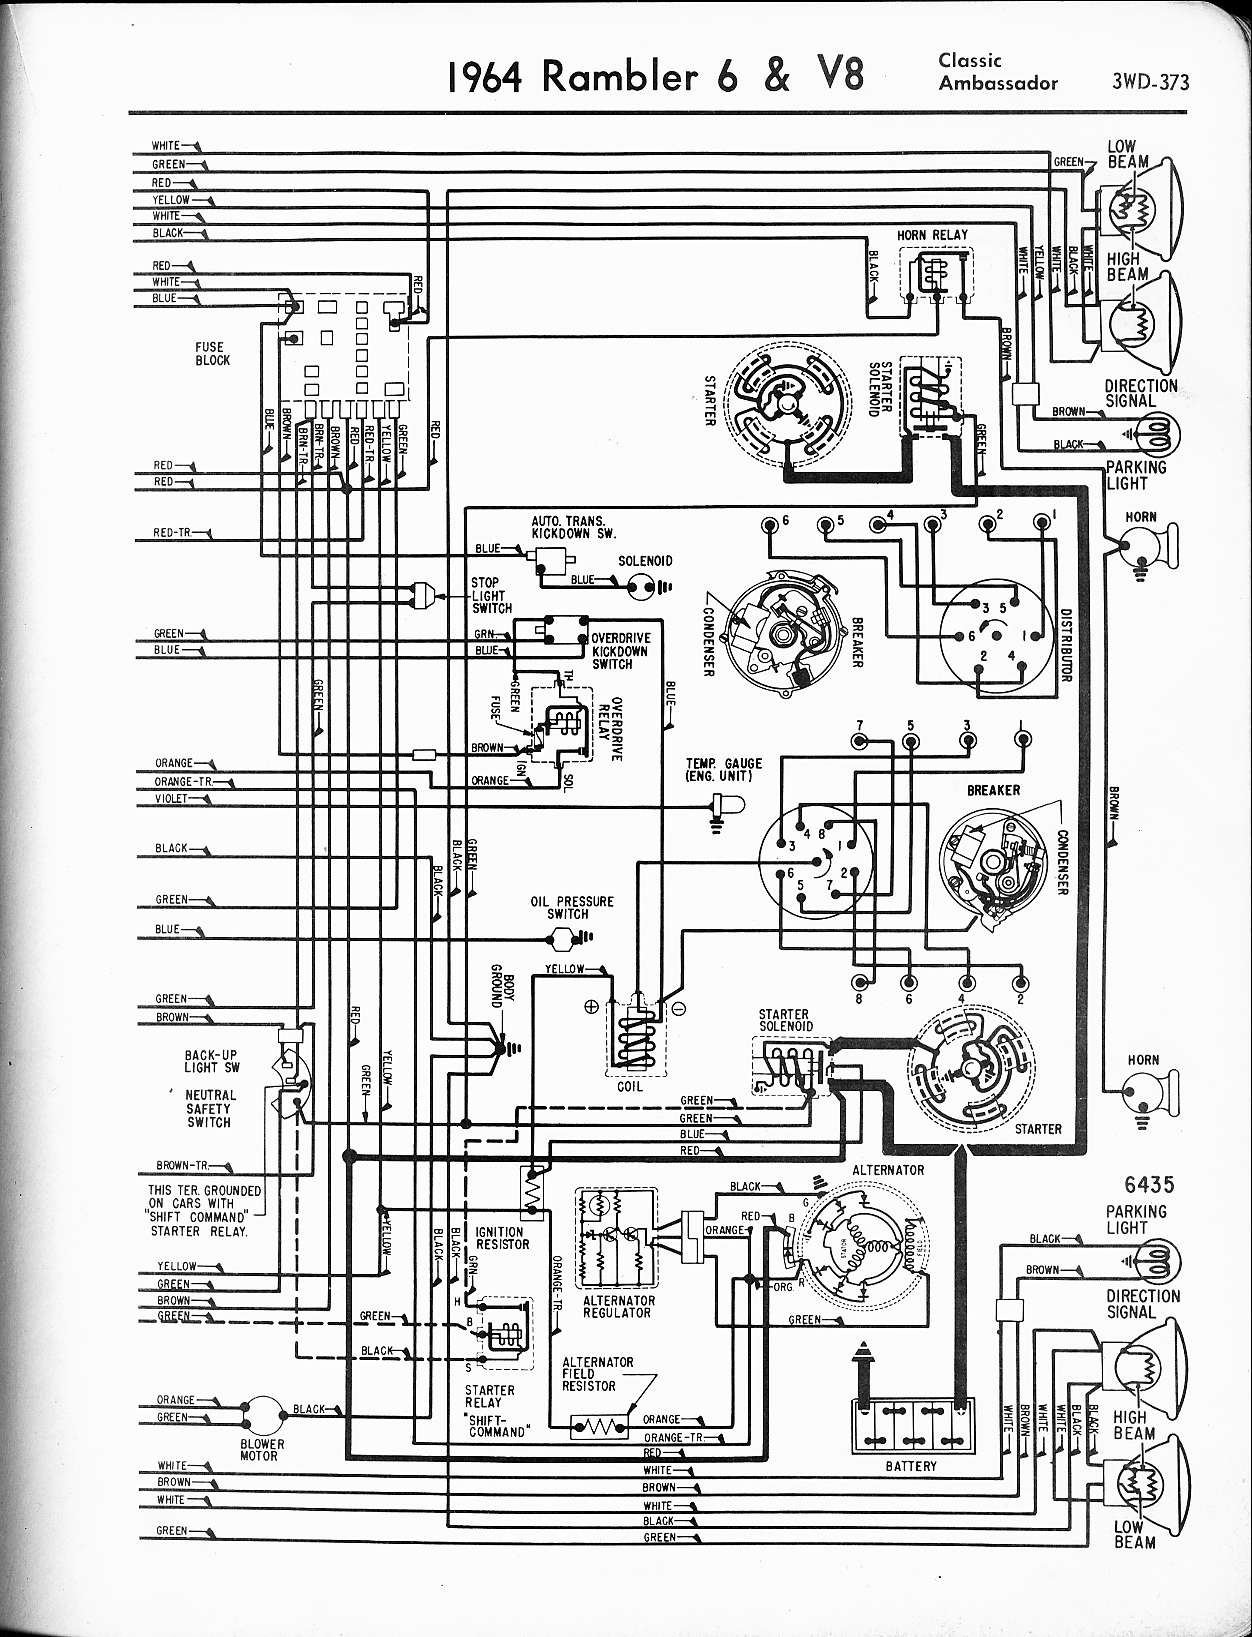 rambler wiring diagrams the old car manual project rh oldcarmanualproject  com 1967 Rambler Marlin 1965 Rambler